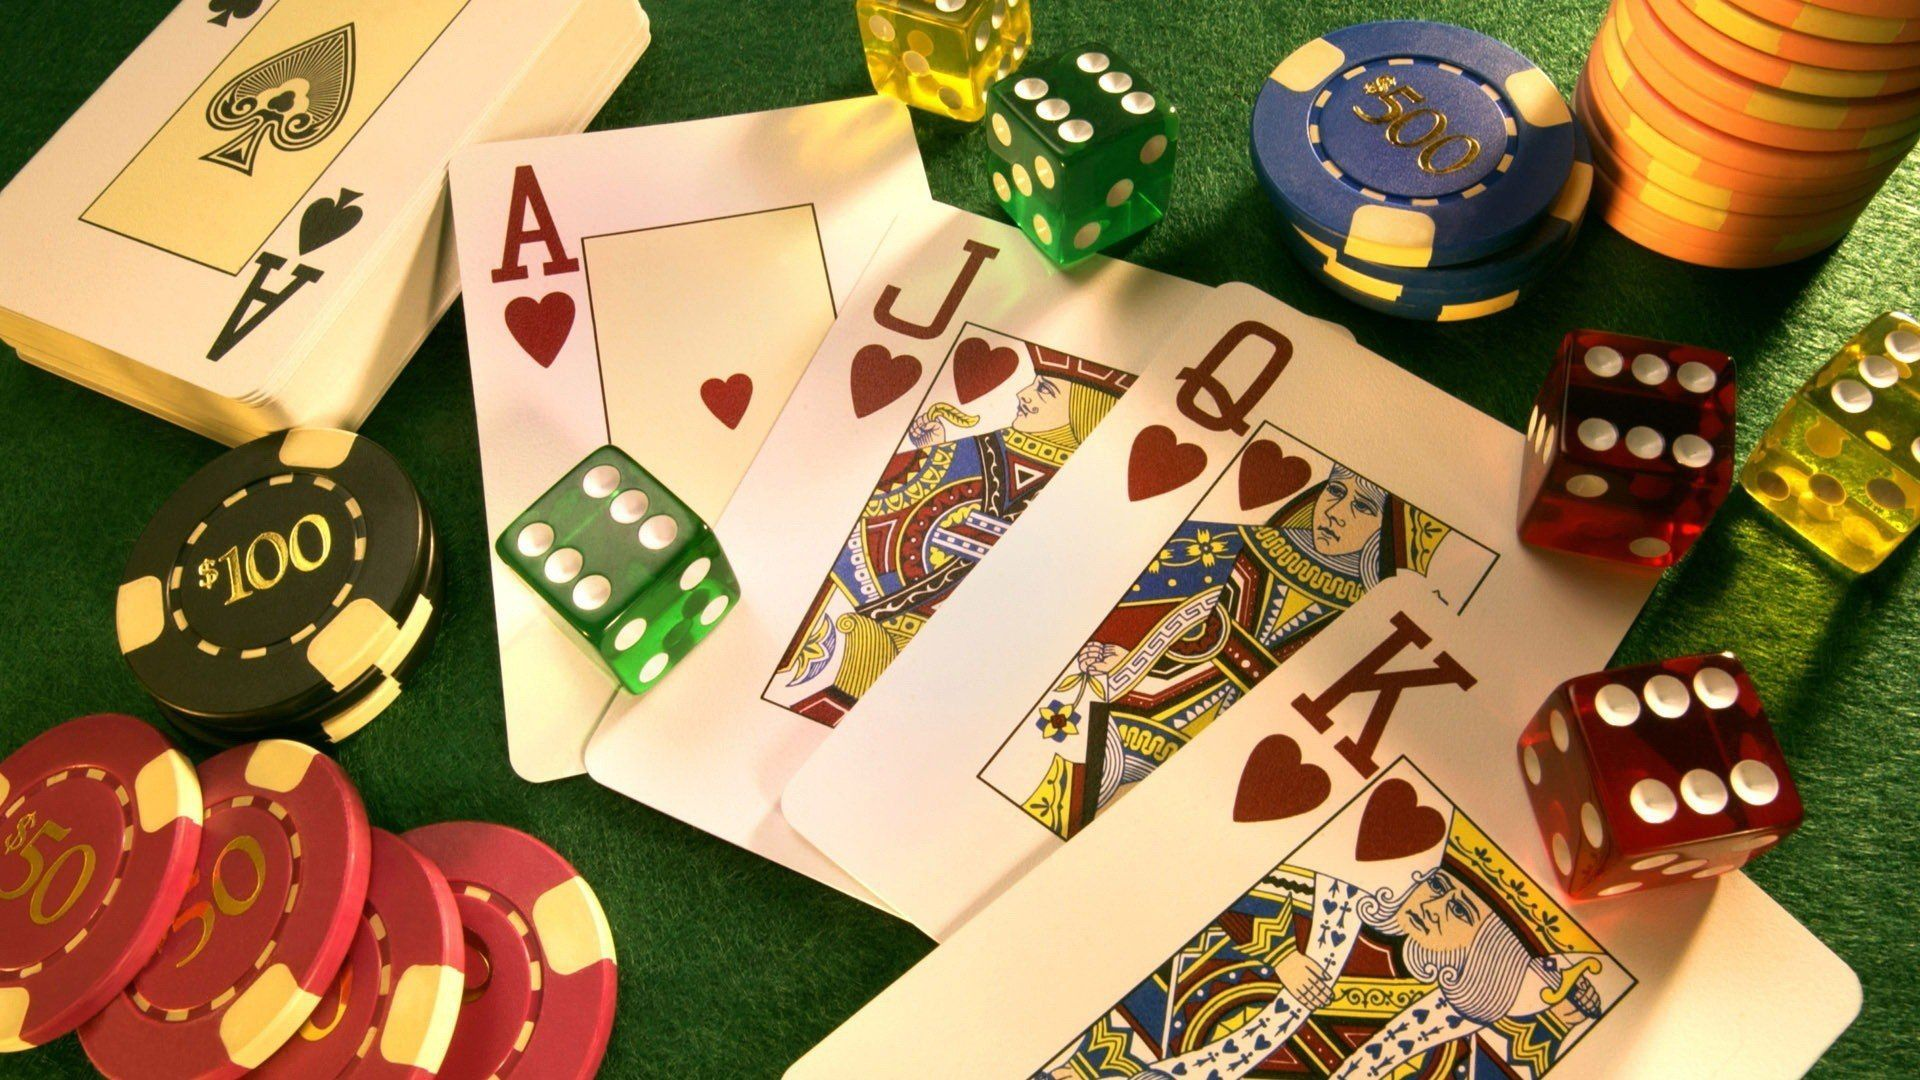 Why Casino Is Not Any Good Friend To Small Business